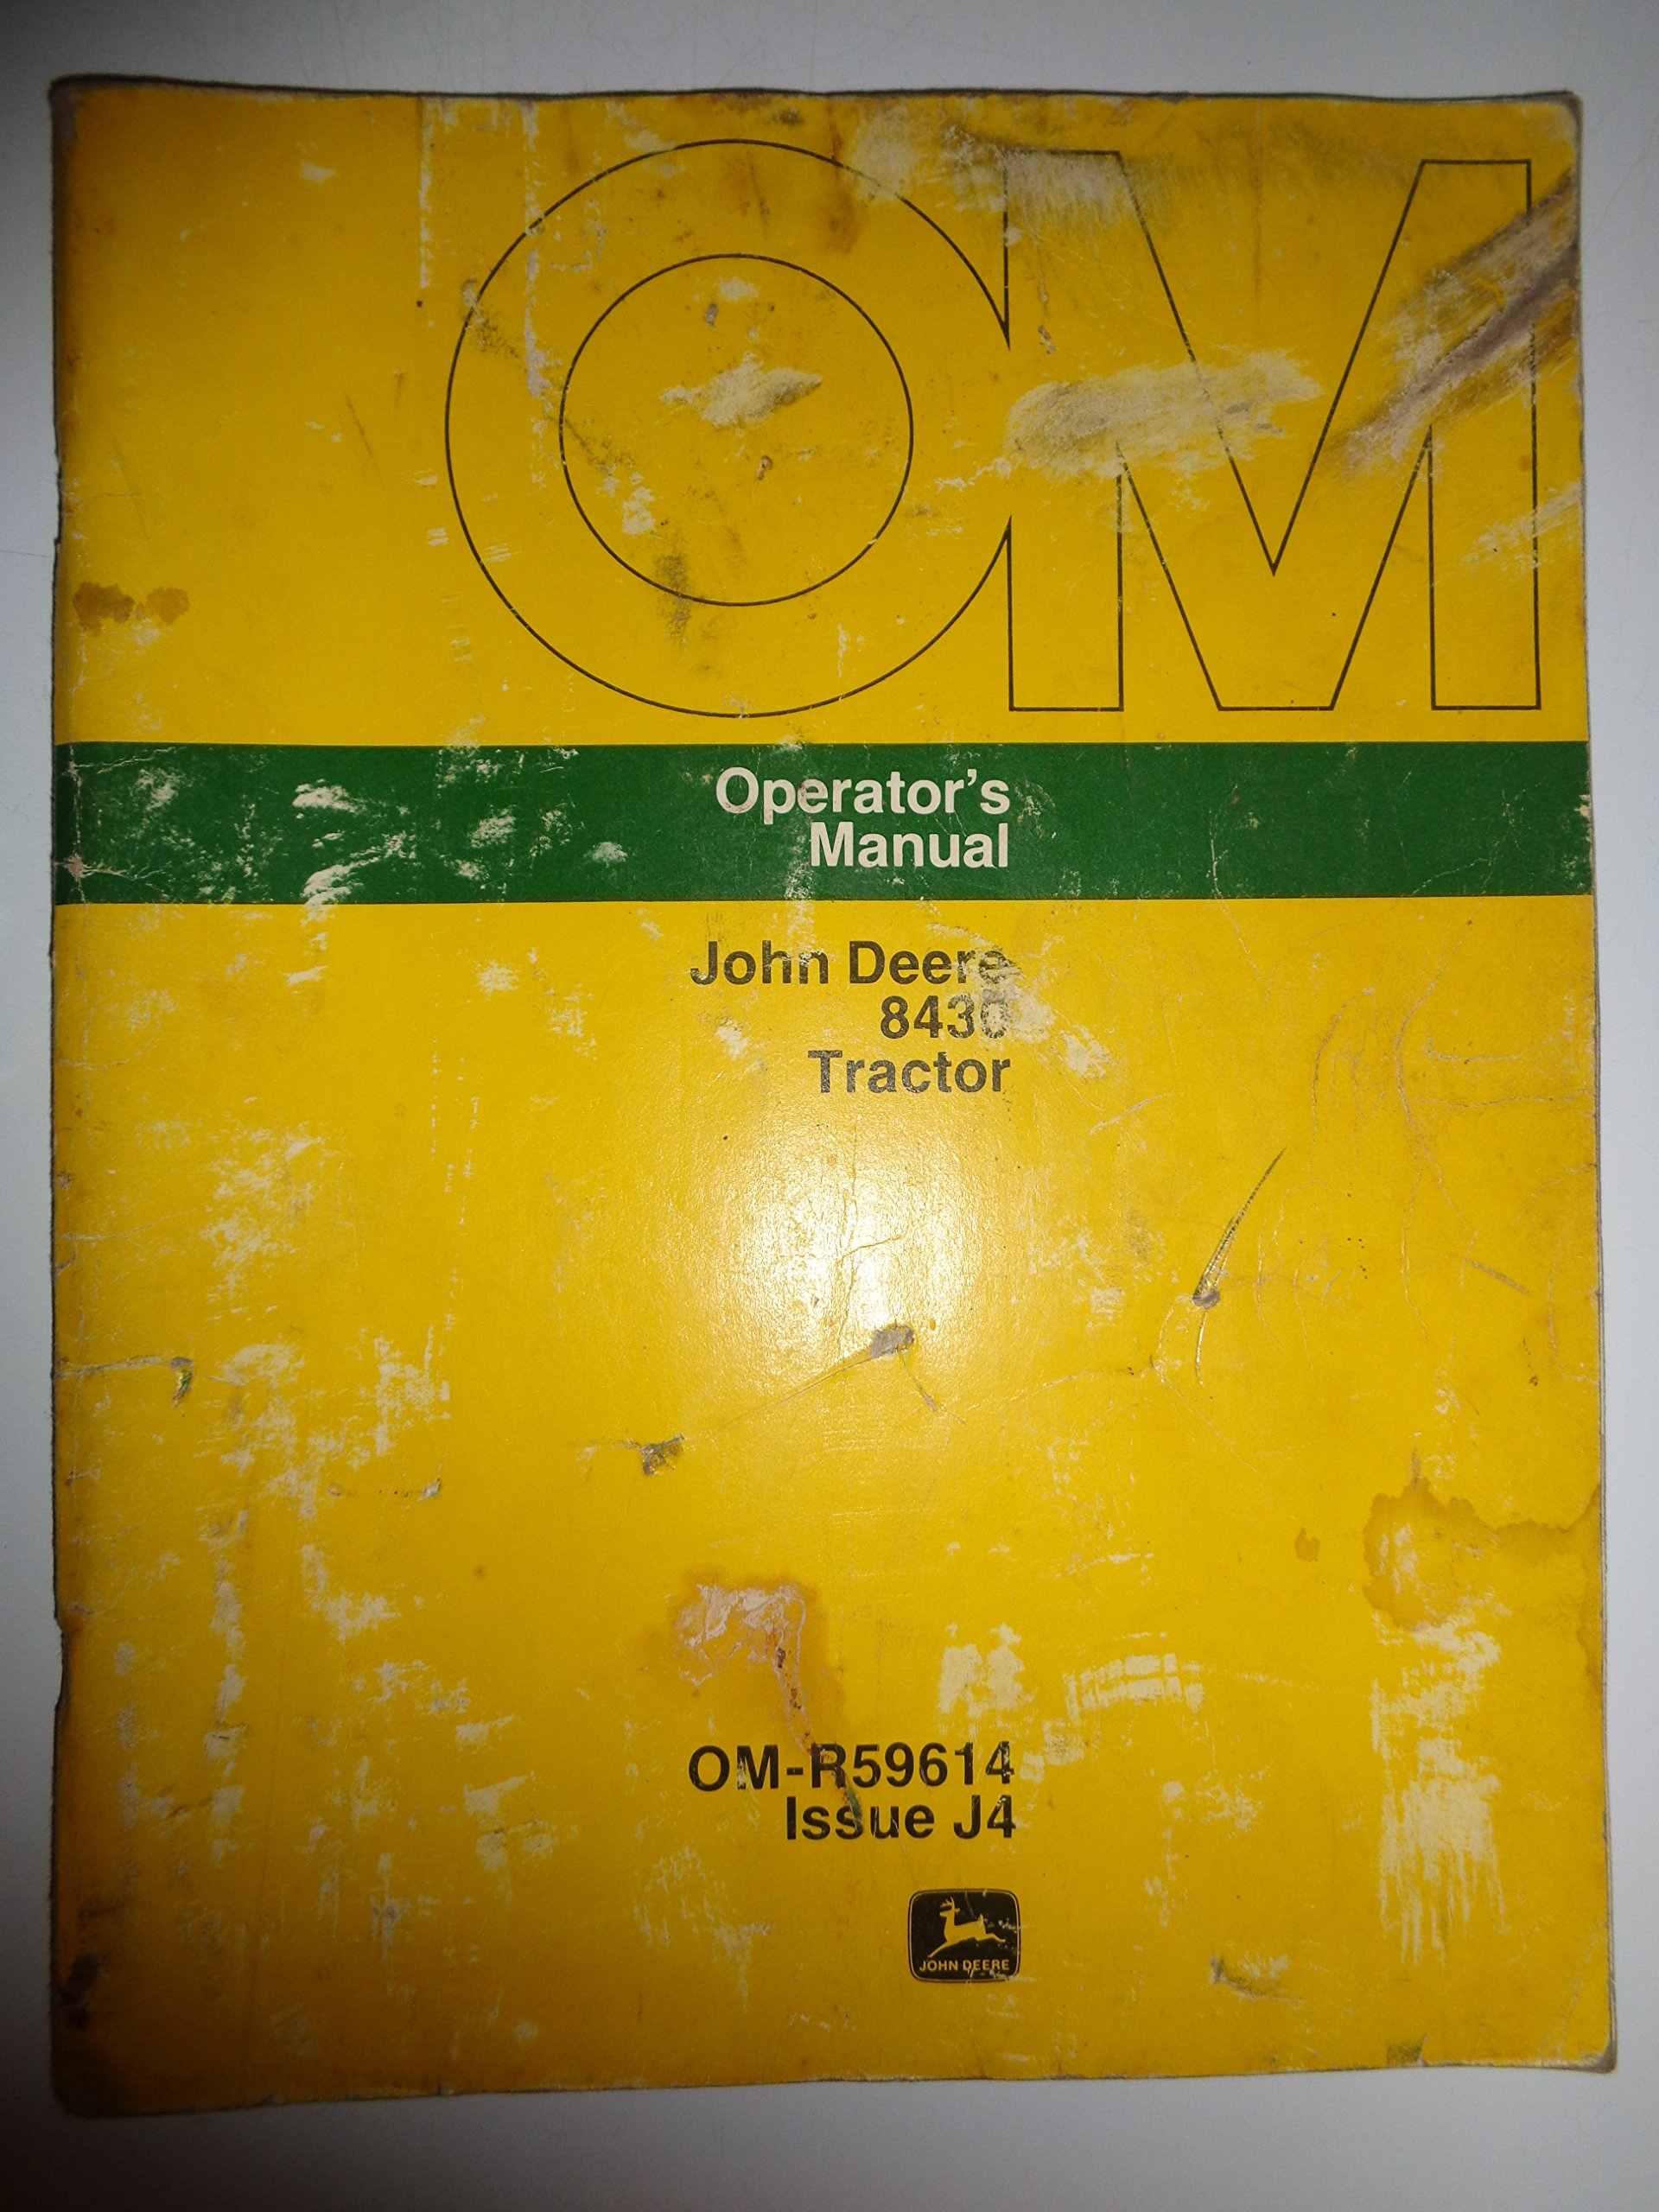 John Deere 8430 Tractor Operators Owners Manual Original OM-R59614 J4: John  Deere: Amazon.com: Books